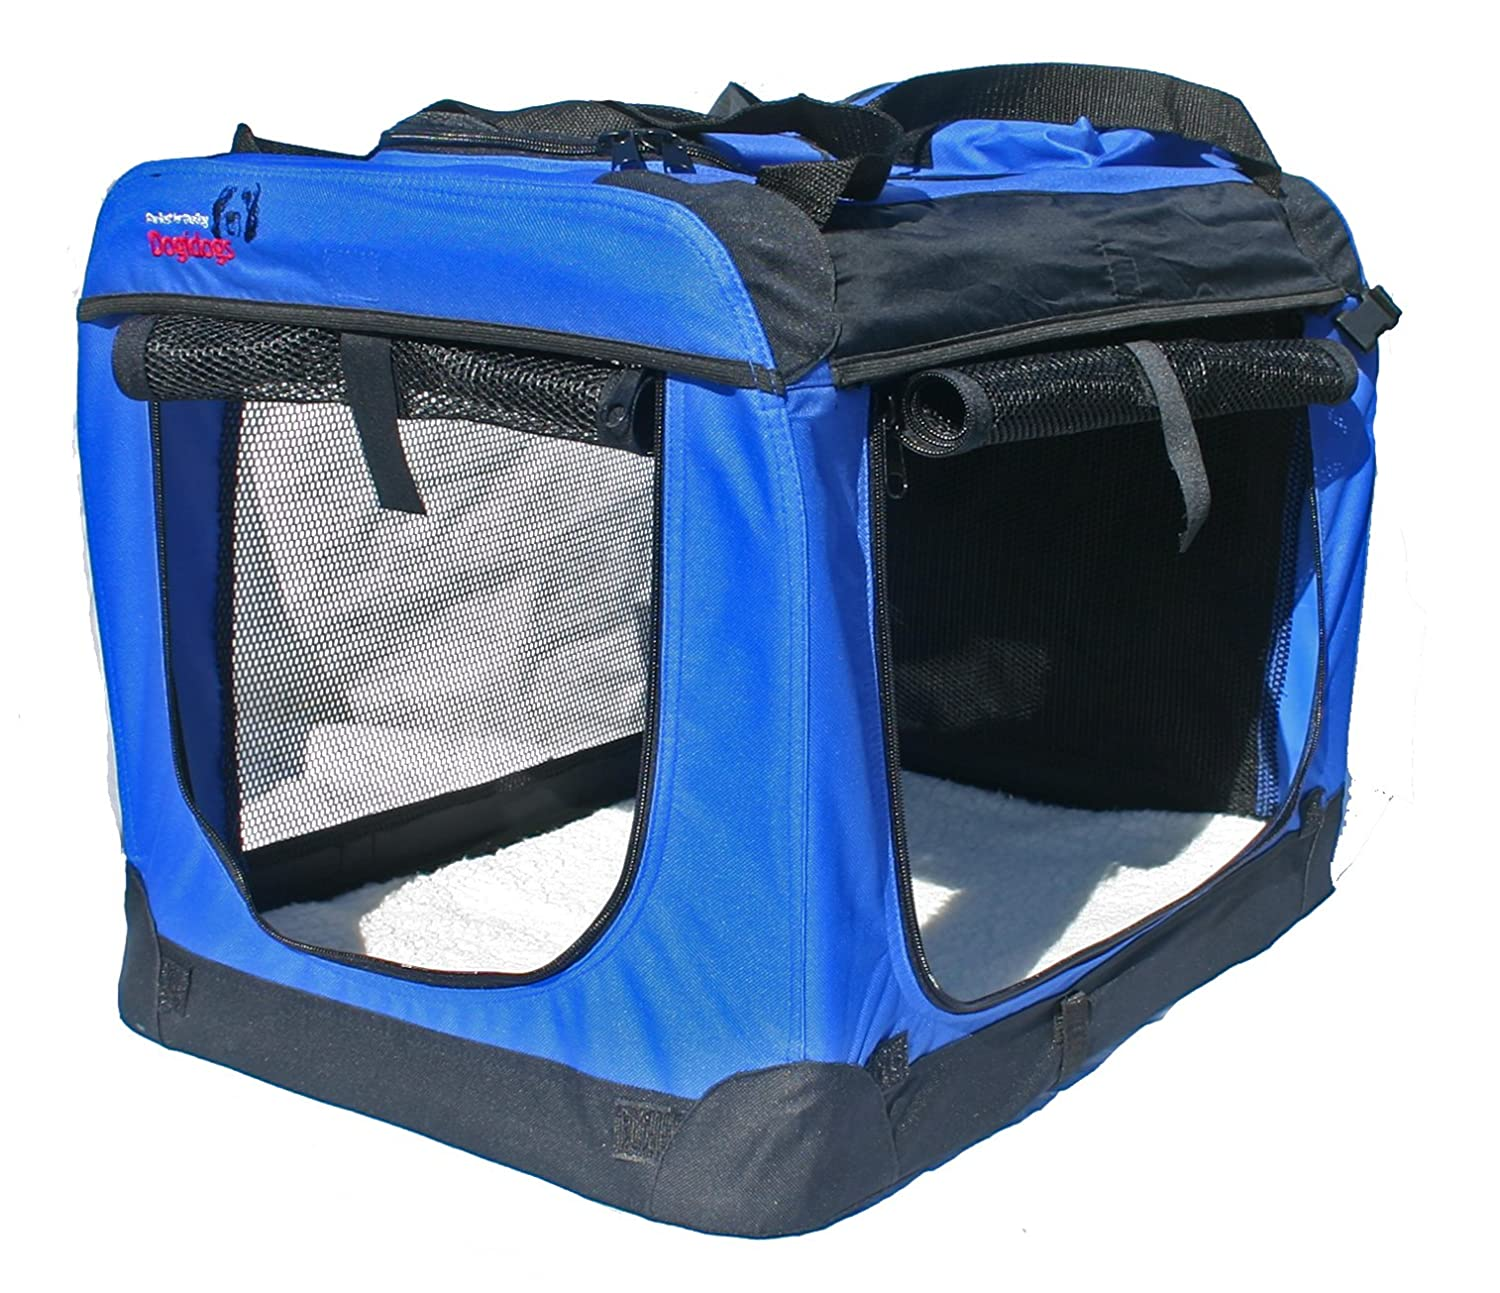 L (70 x 52 x 52 cm) Dogidogs Transport Box for Dogs